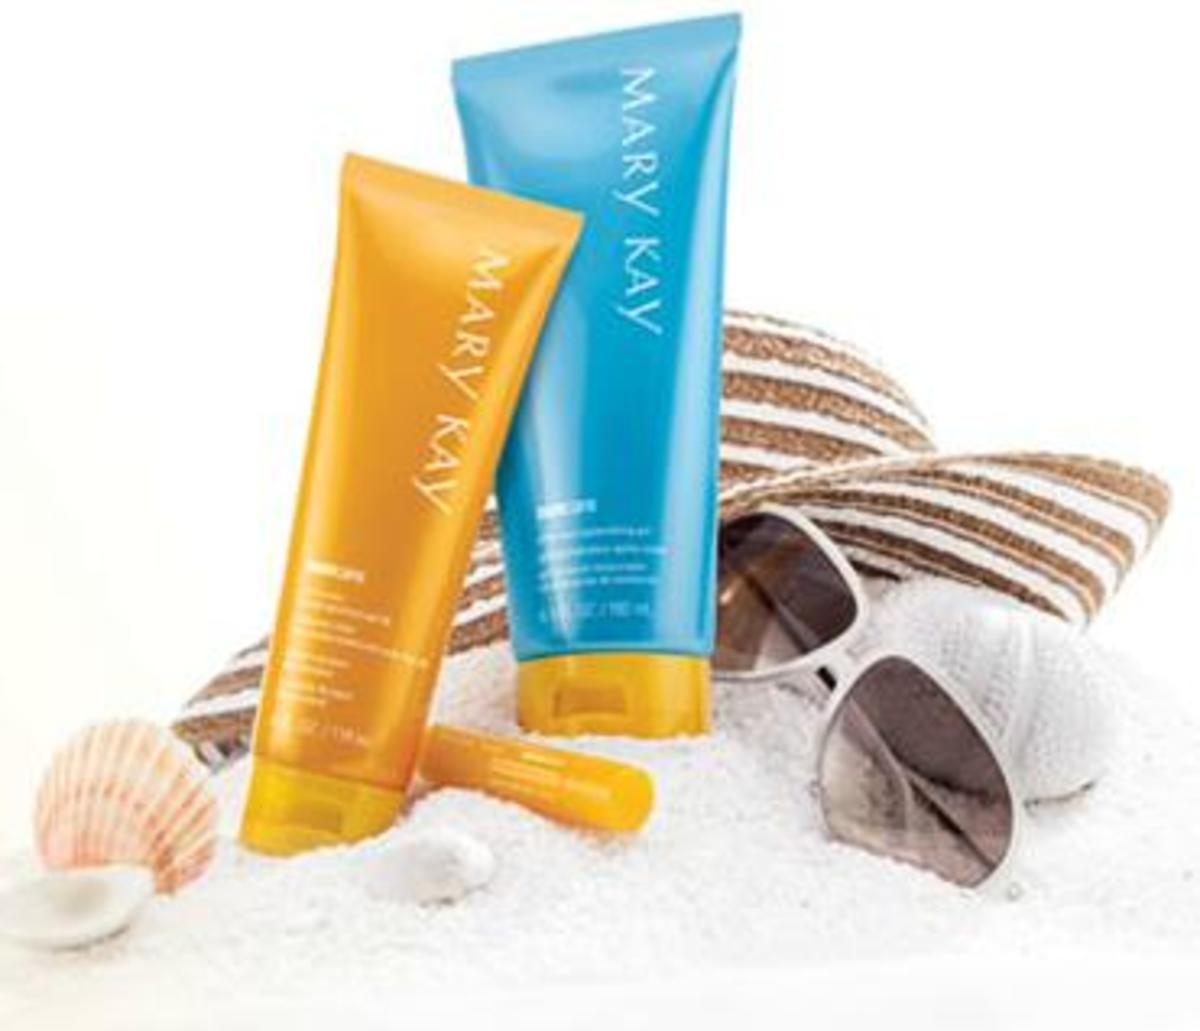 Mary Kay Sun Care Products